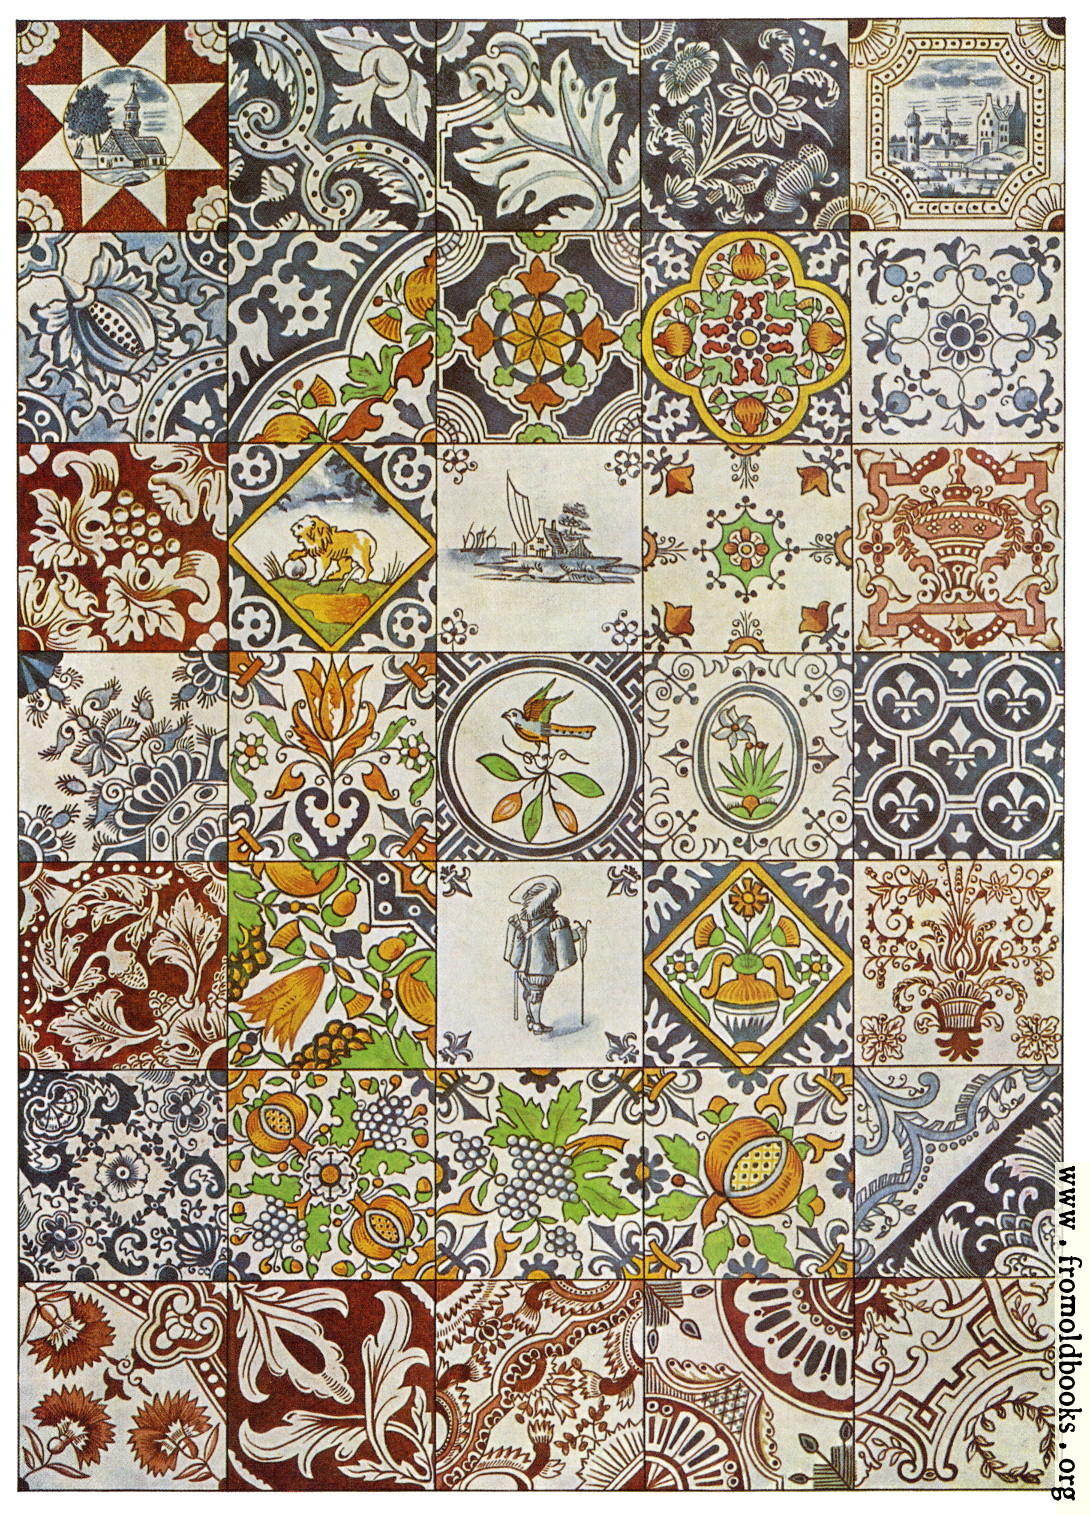 104. Dutch Ceramic Tiles